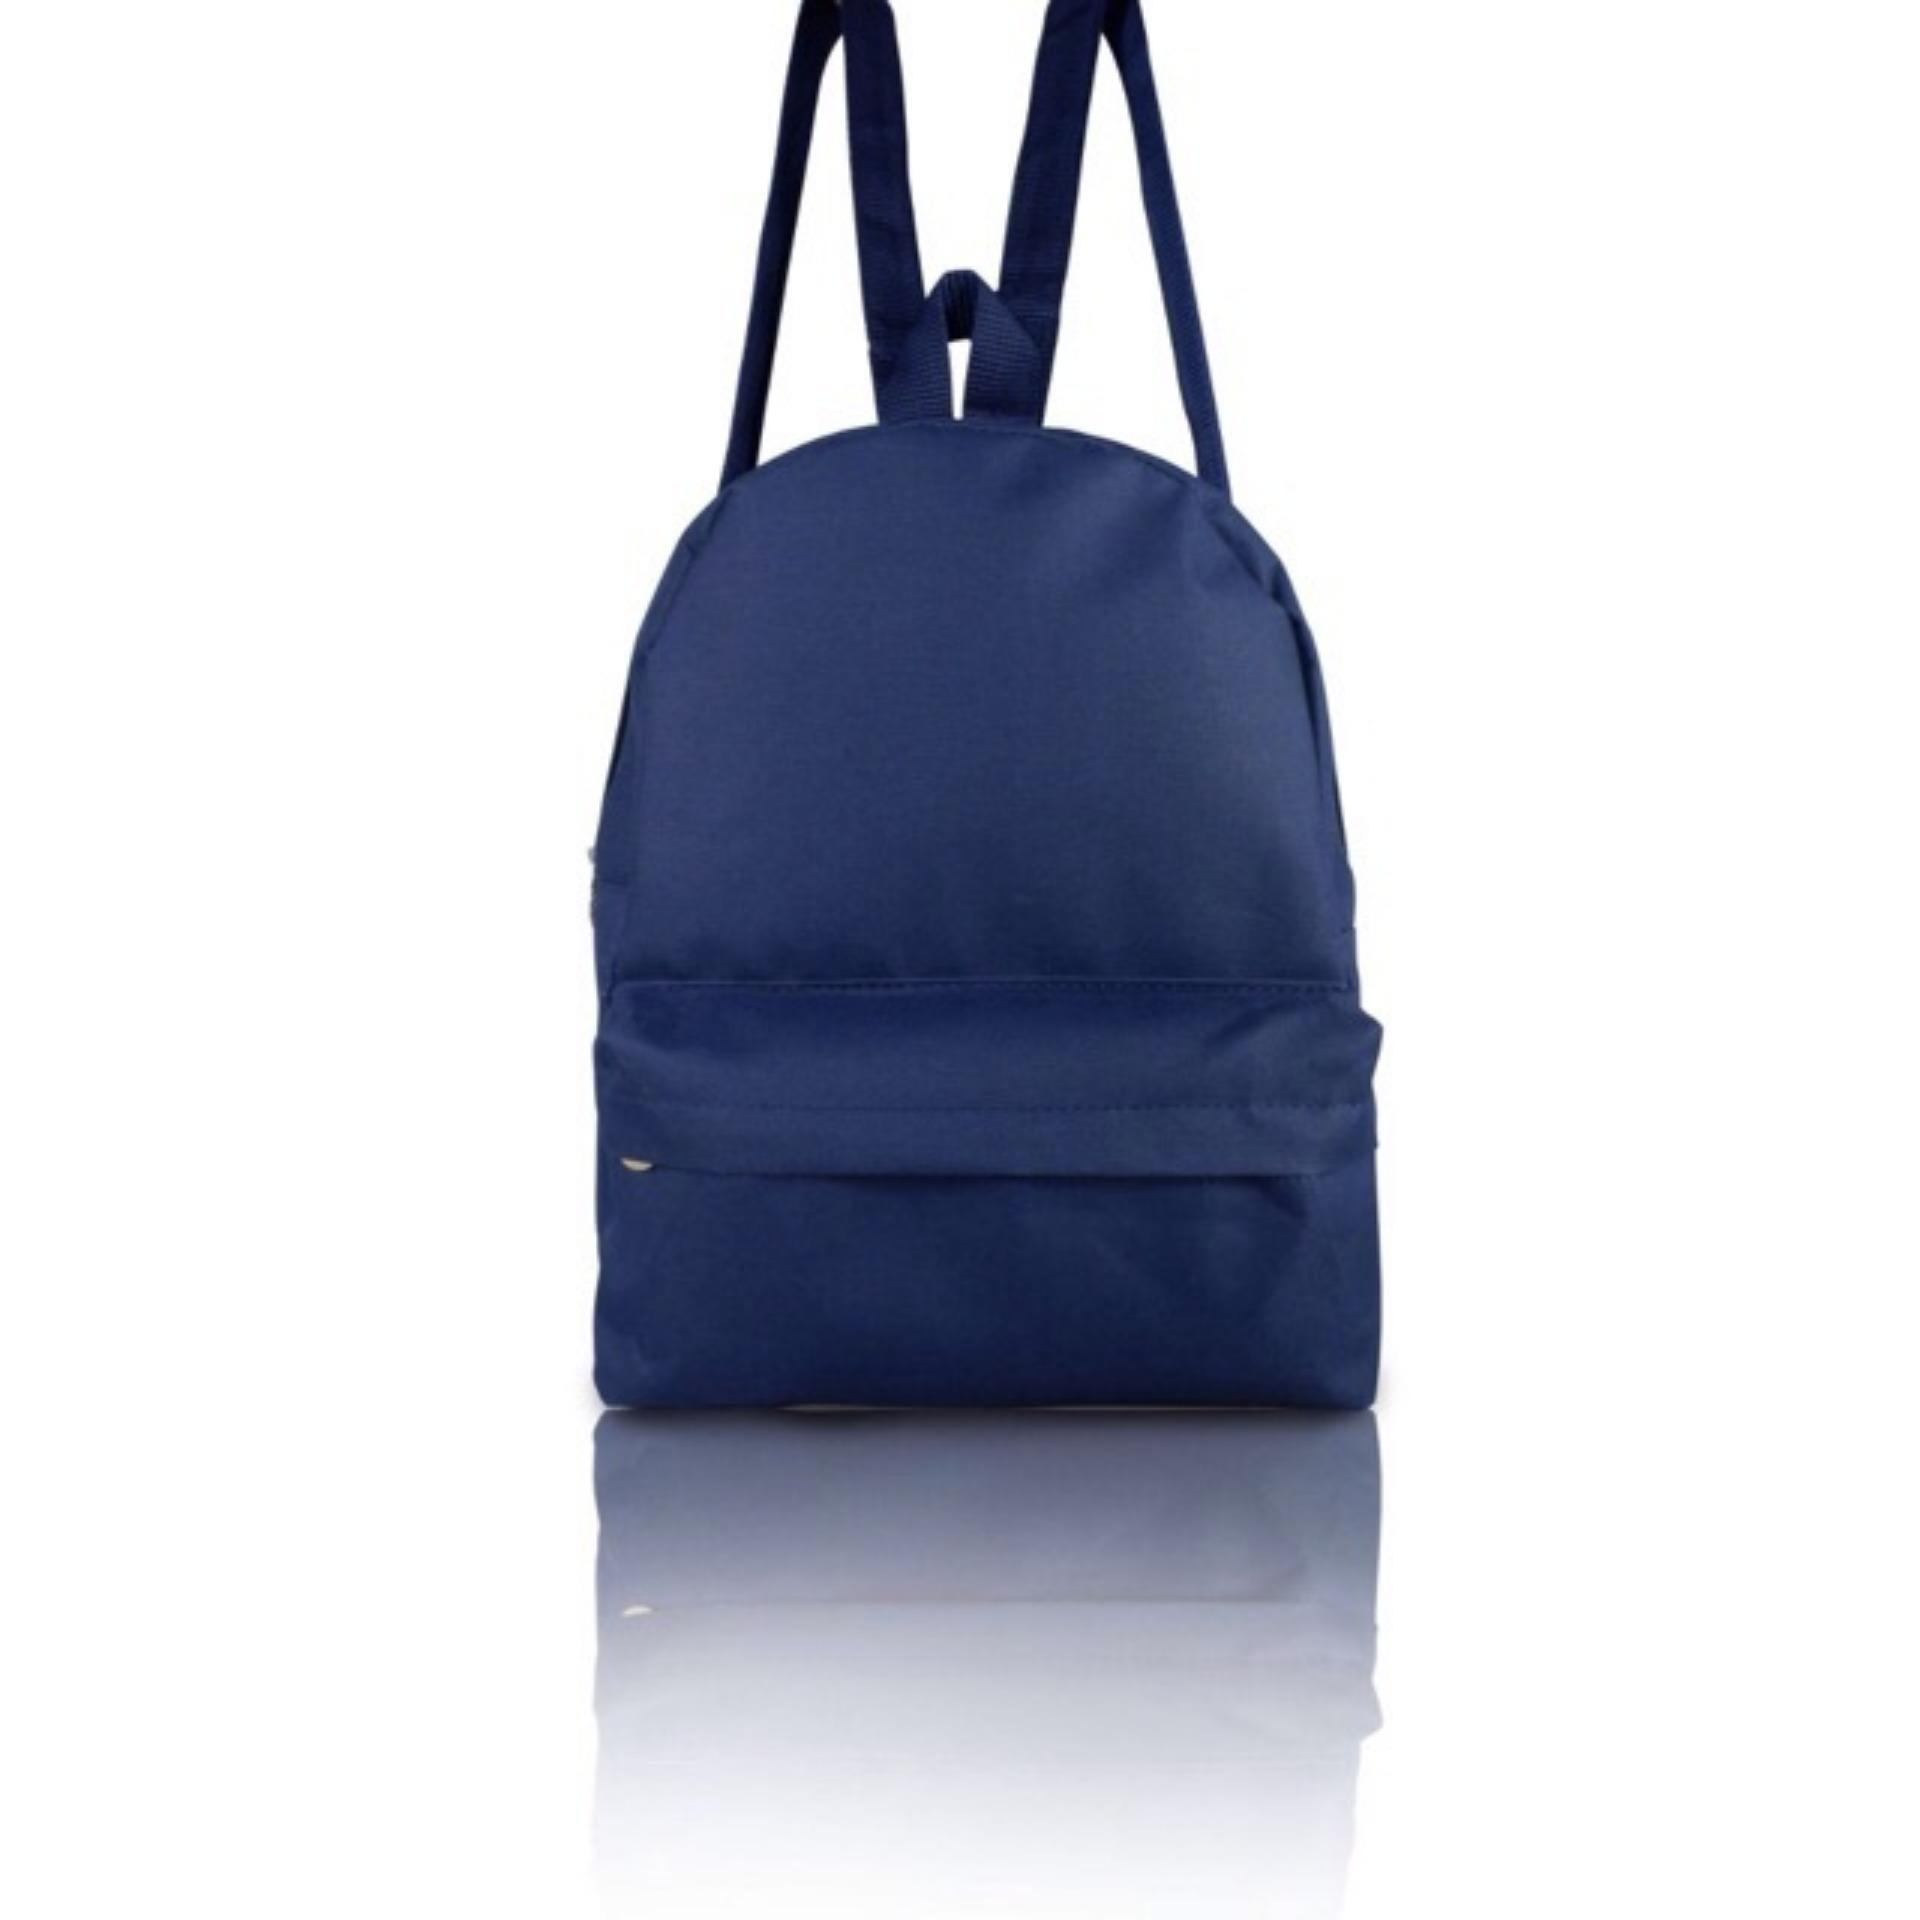 Raisya Tas Fashion Ransel Mini Canvas Polos - Navy